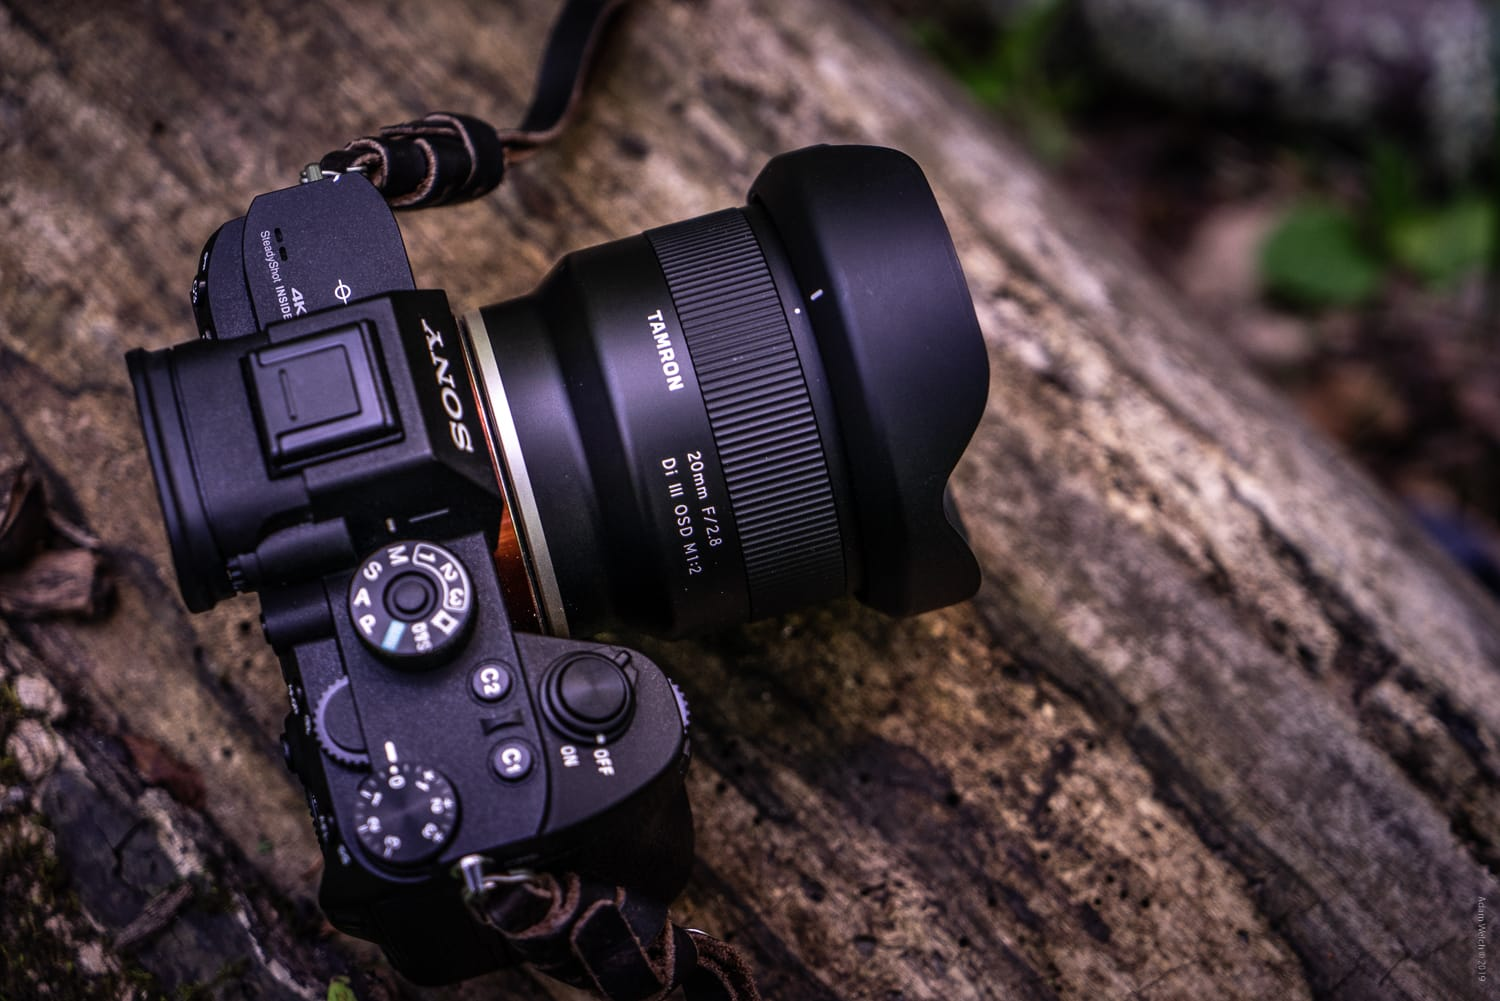 Hands-On Review of the Tamron 20mm f/2.8 Di III OSD M1:2 for Sony FE-Mount